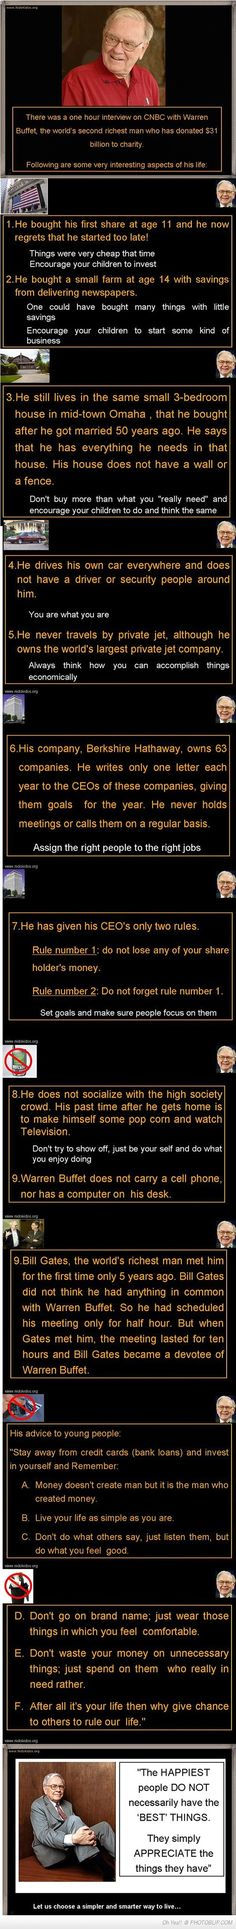 The 2nd Richest Man In The World Is Simple